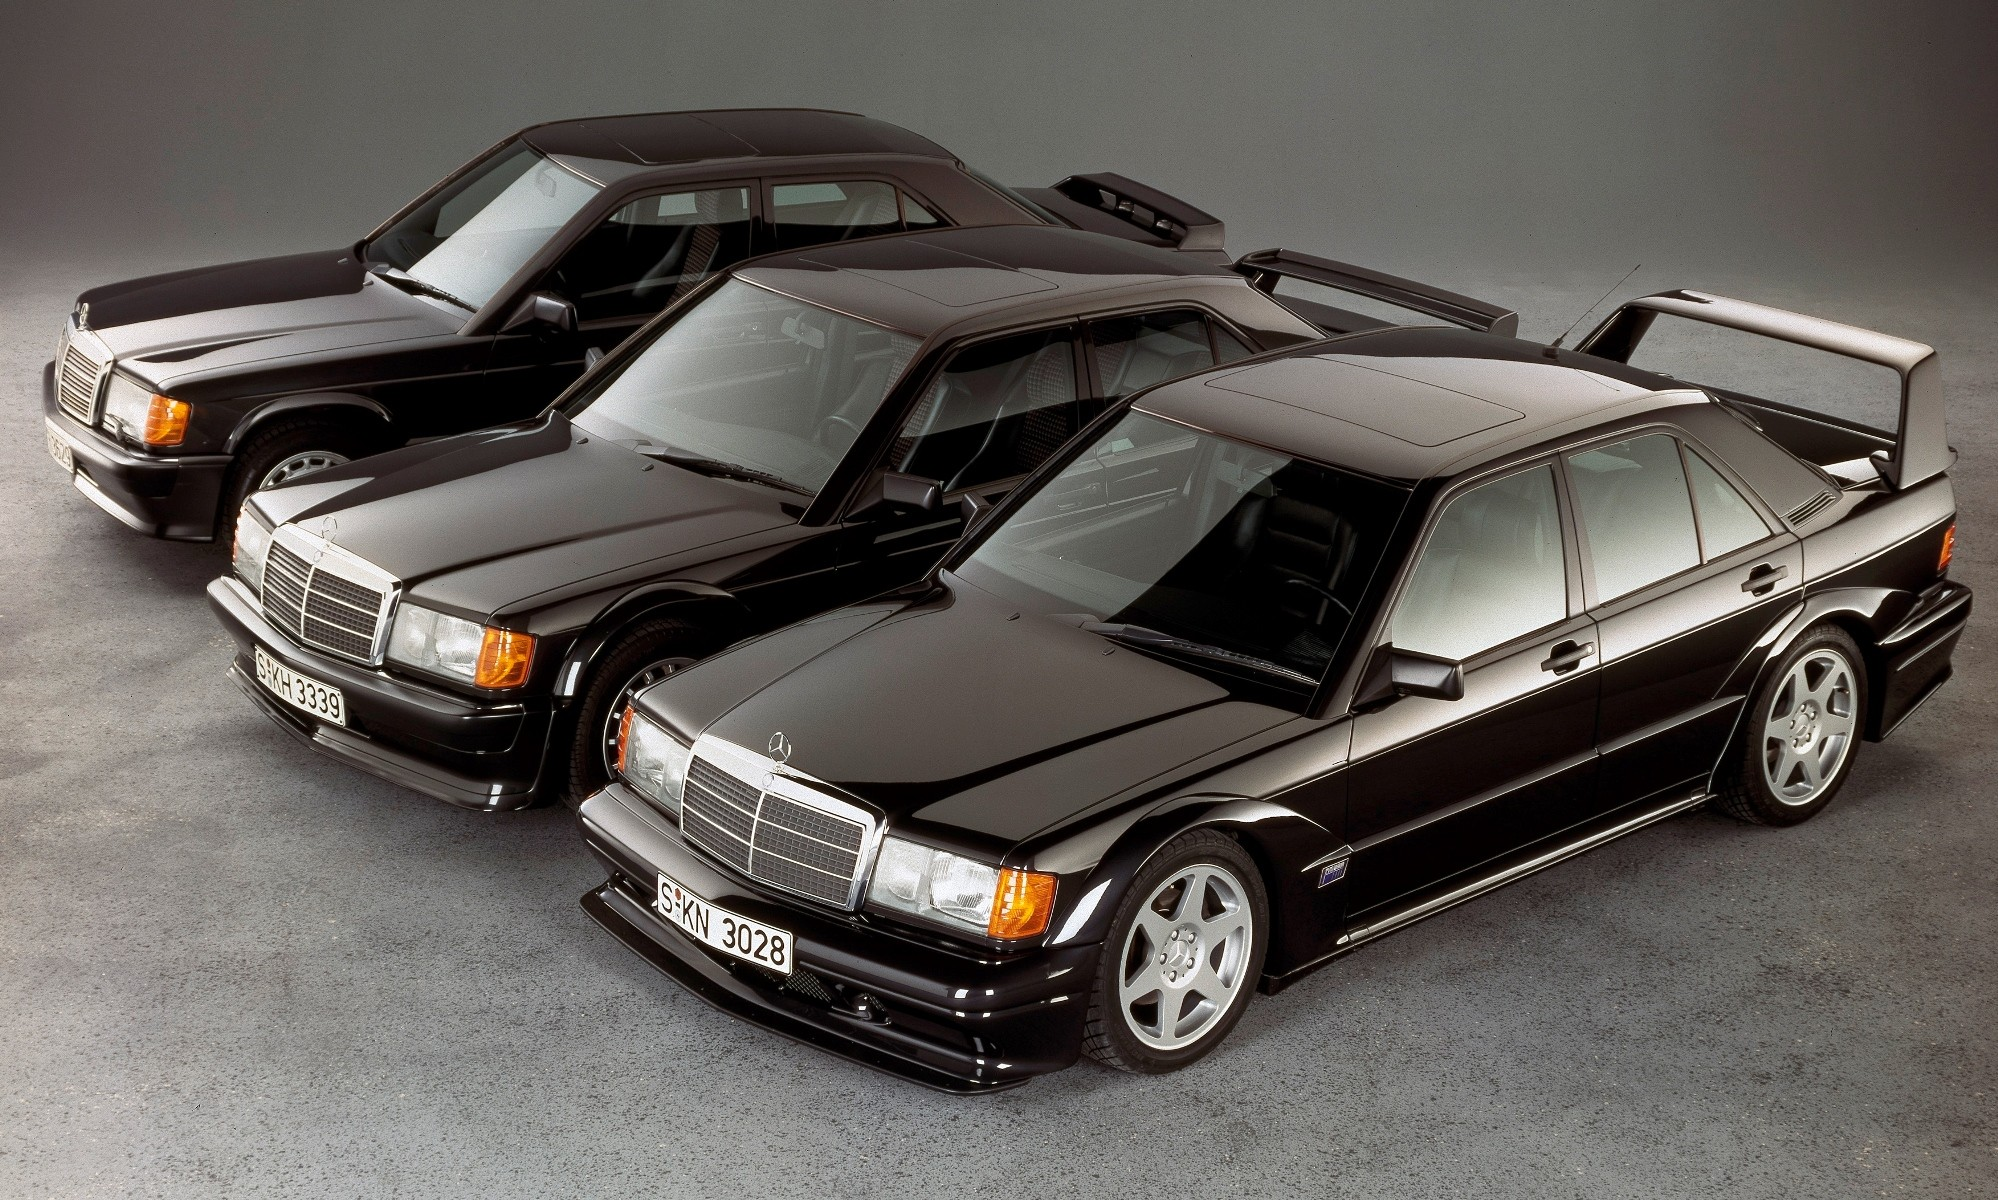 Mercedes-Benz 190E 2,5-16 Evo II family